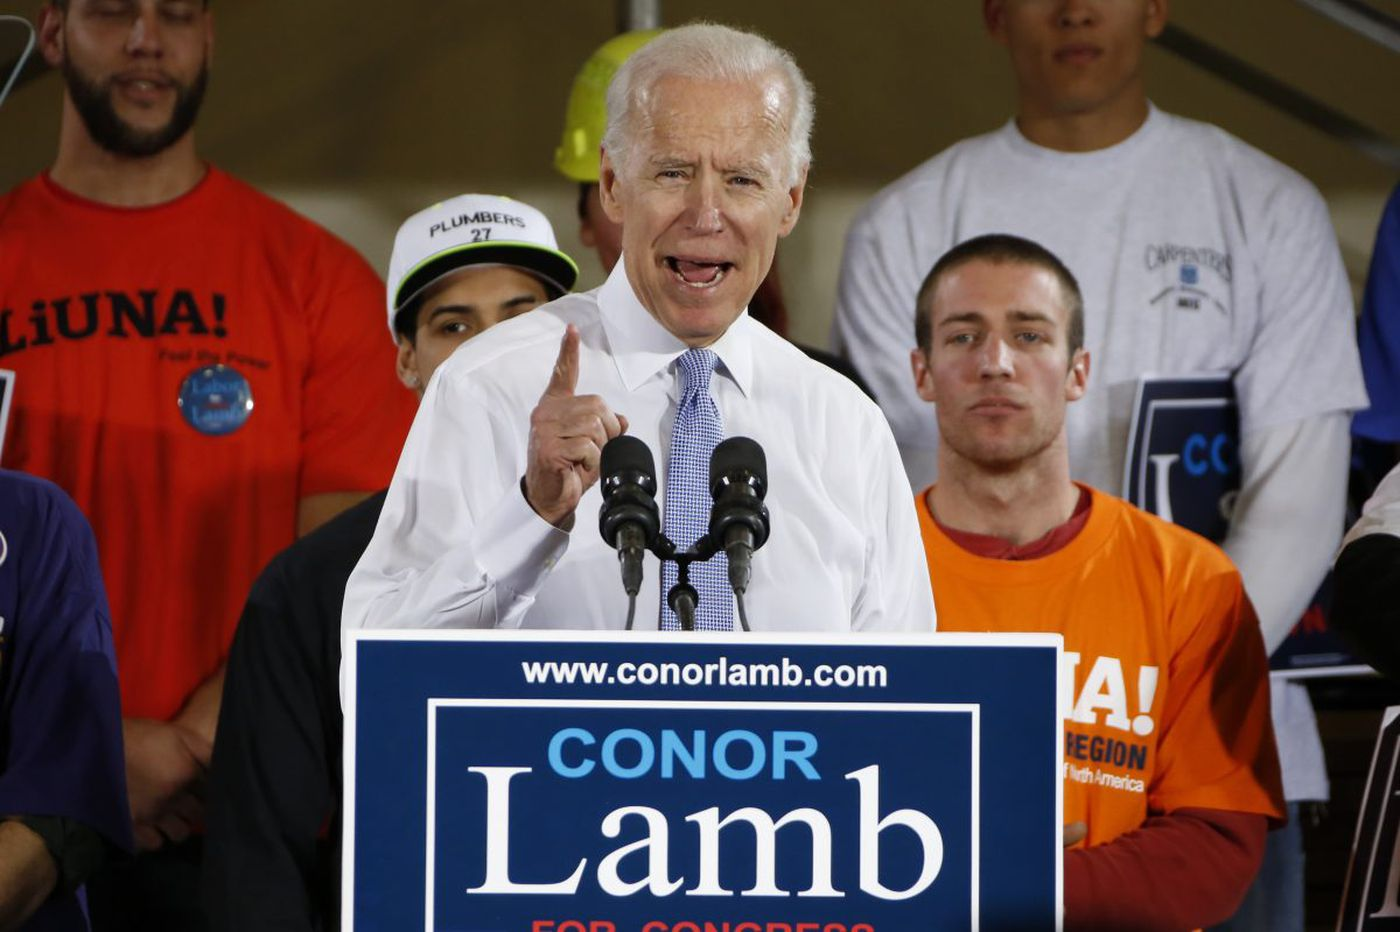 Trump, Biden clash as Democrats hope ex-VP can win back working-class voters, maybe White House